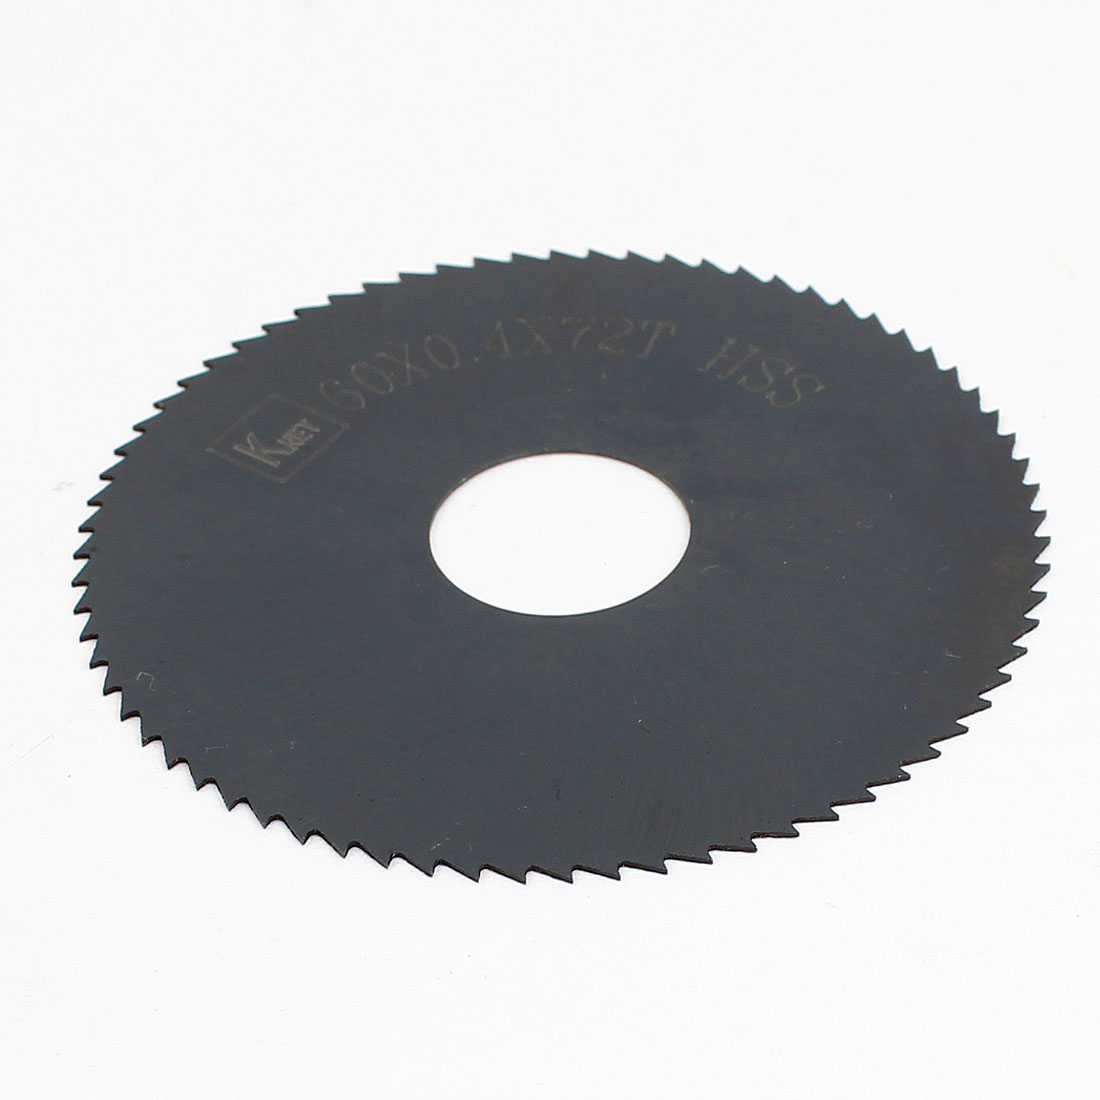 Unique Bargains HSS 72 Teeth 60mm x 0.4mm x 16mm Slitting Saw Black